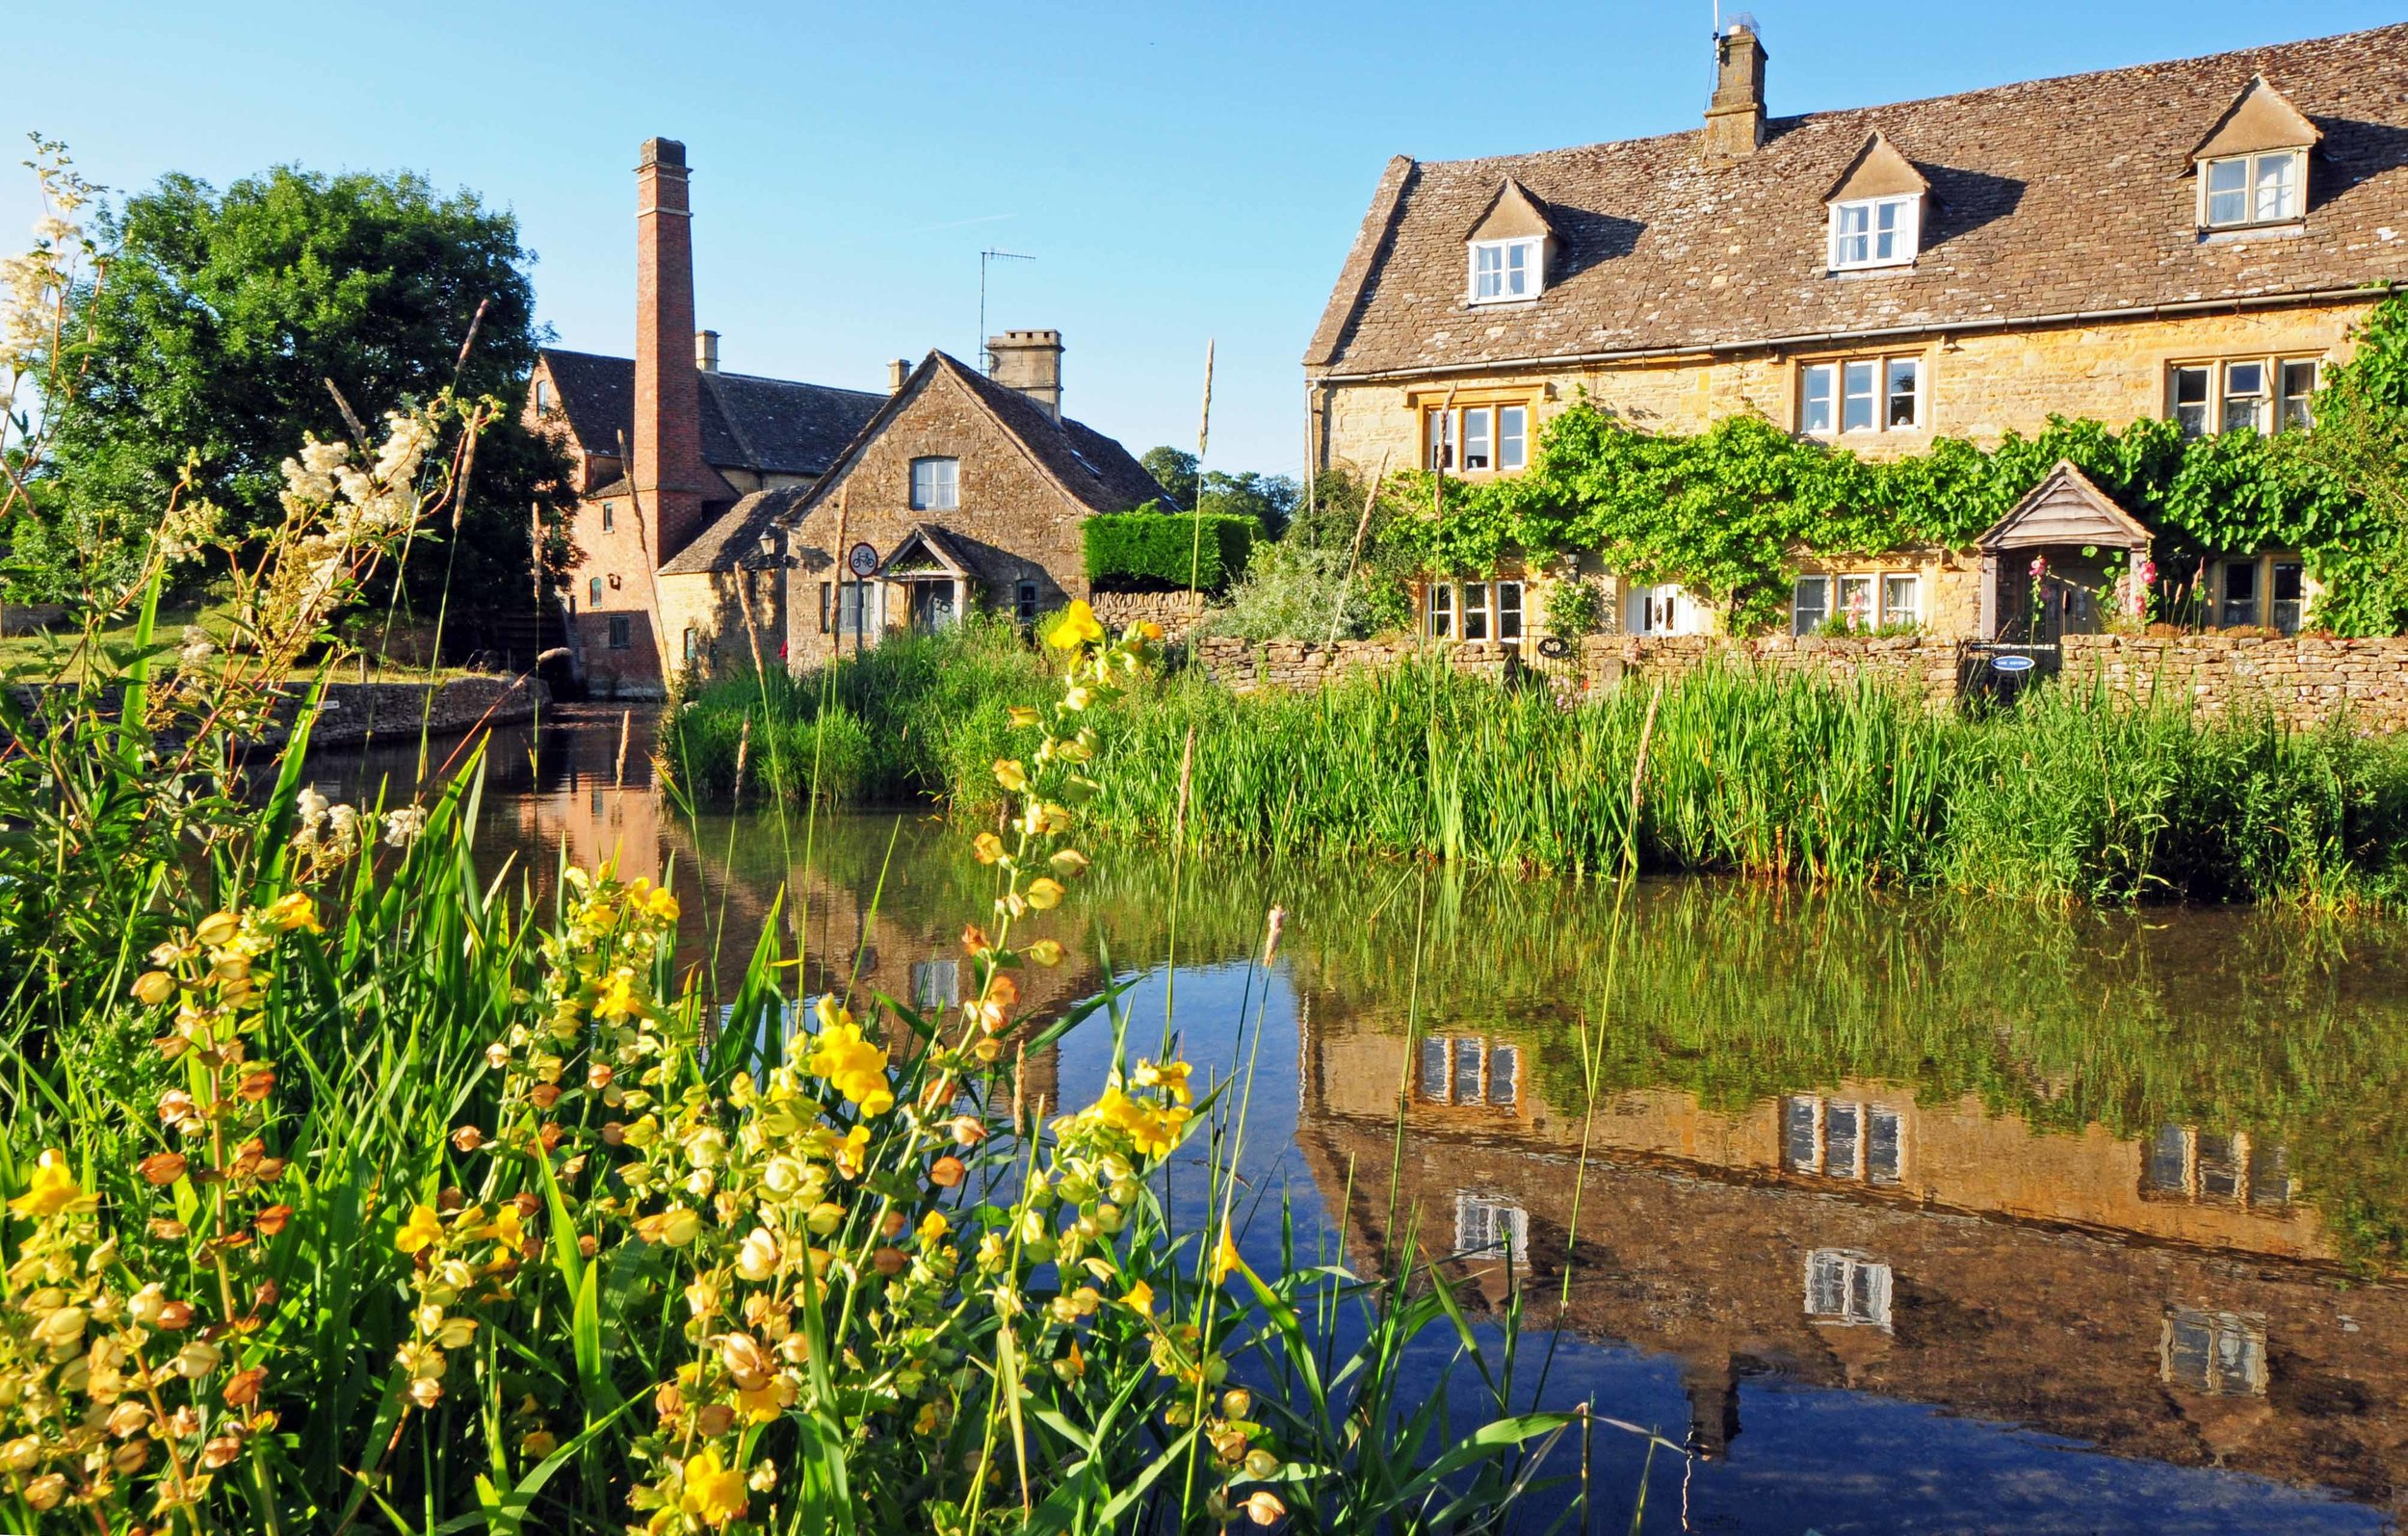 The Old Mill & Stream, LOwer Slaughter.jpg